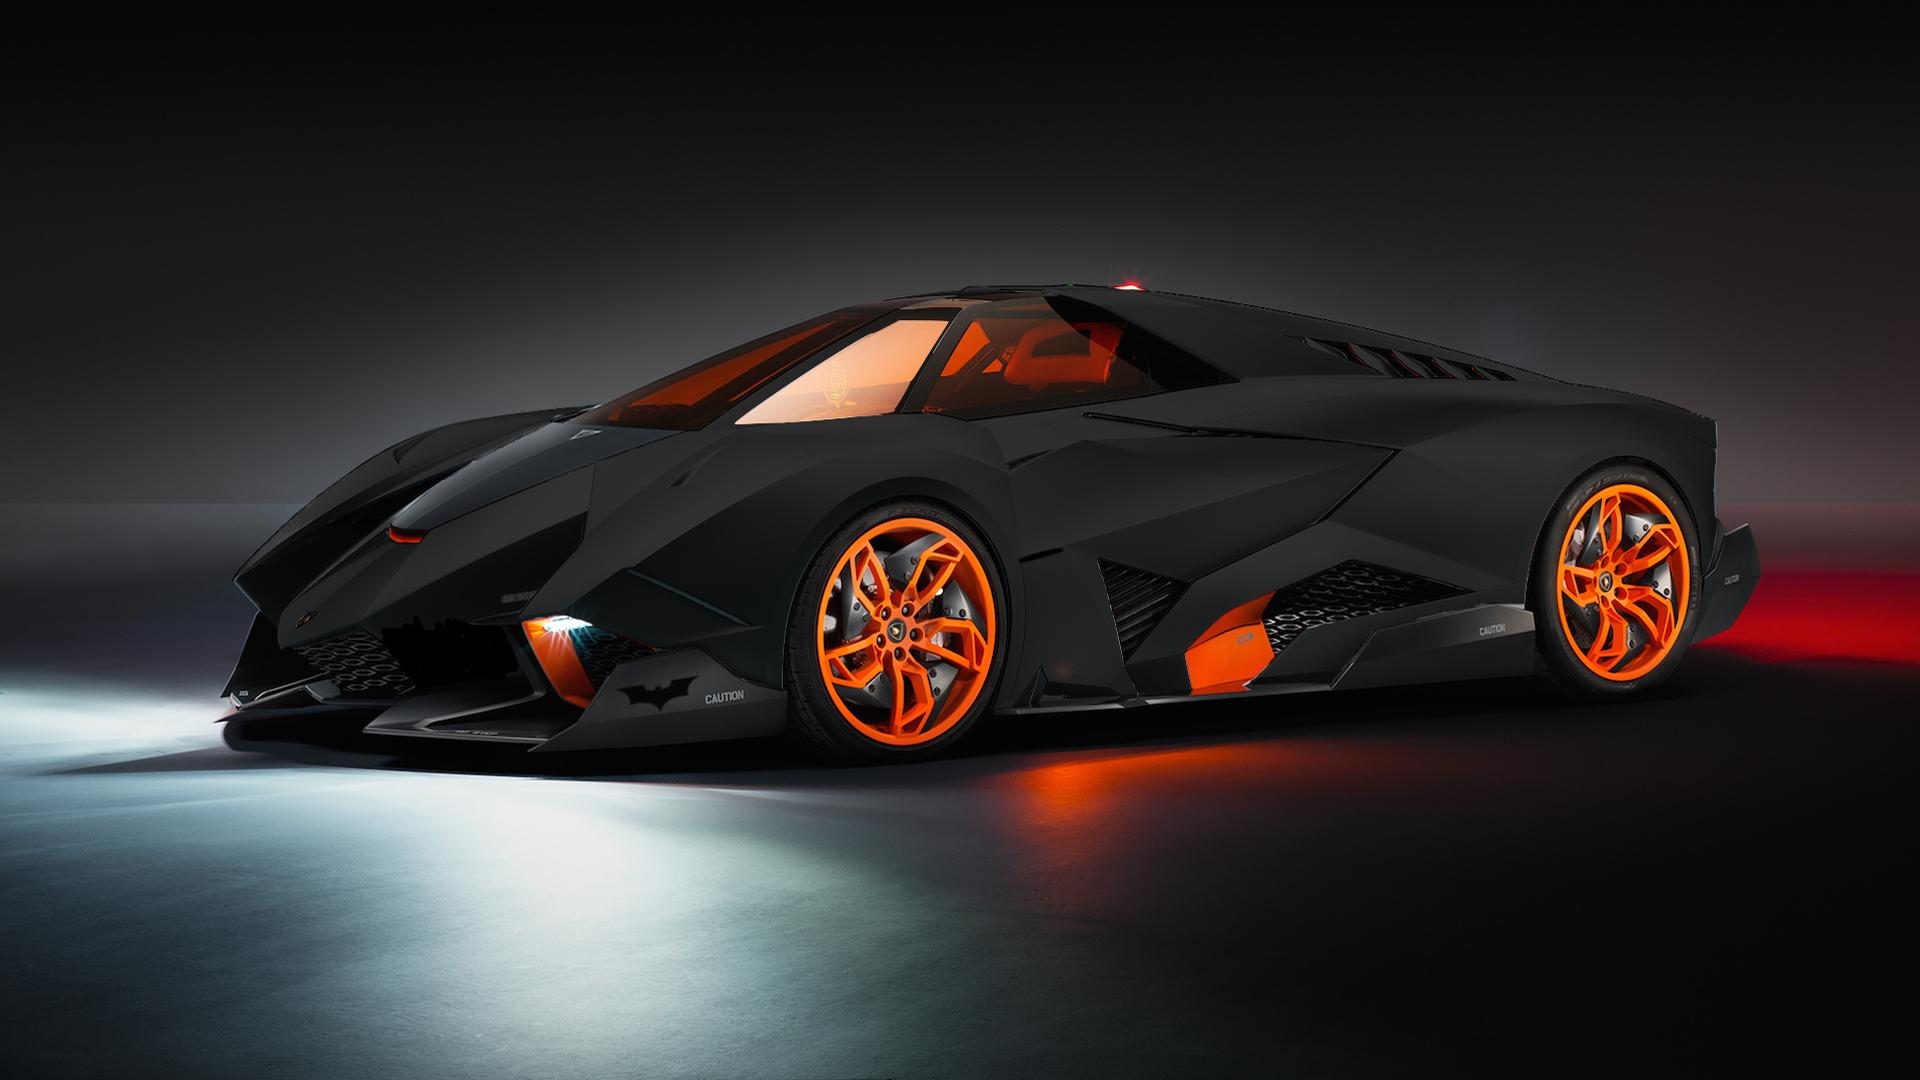 What Modern Concept Car Would Make A Great Batmobile